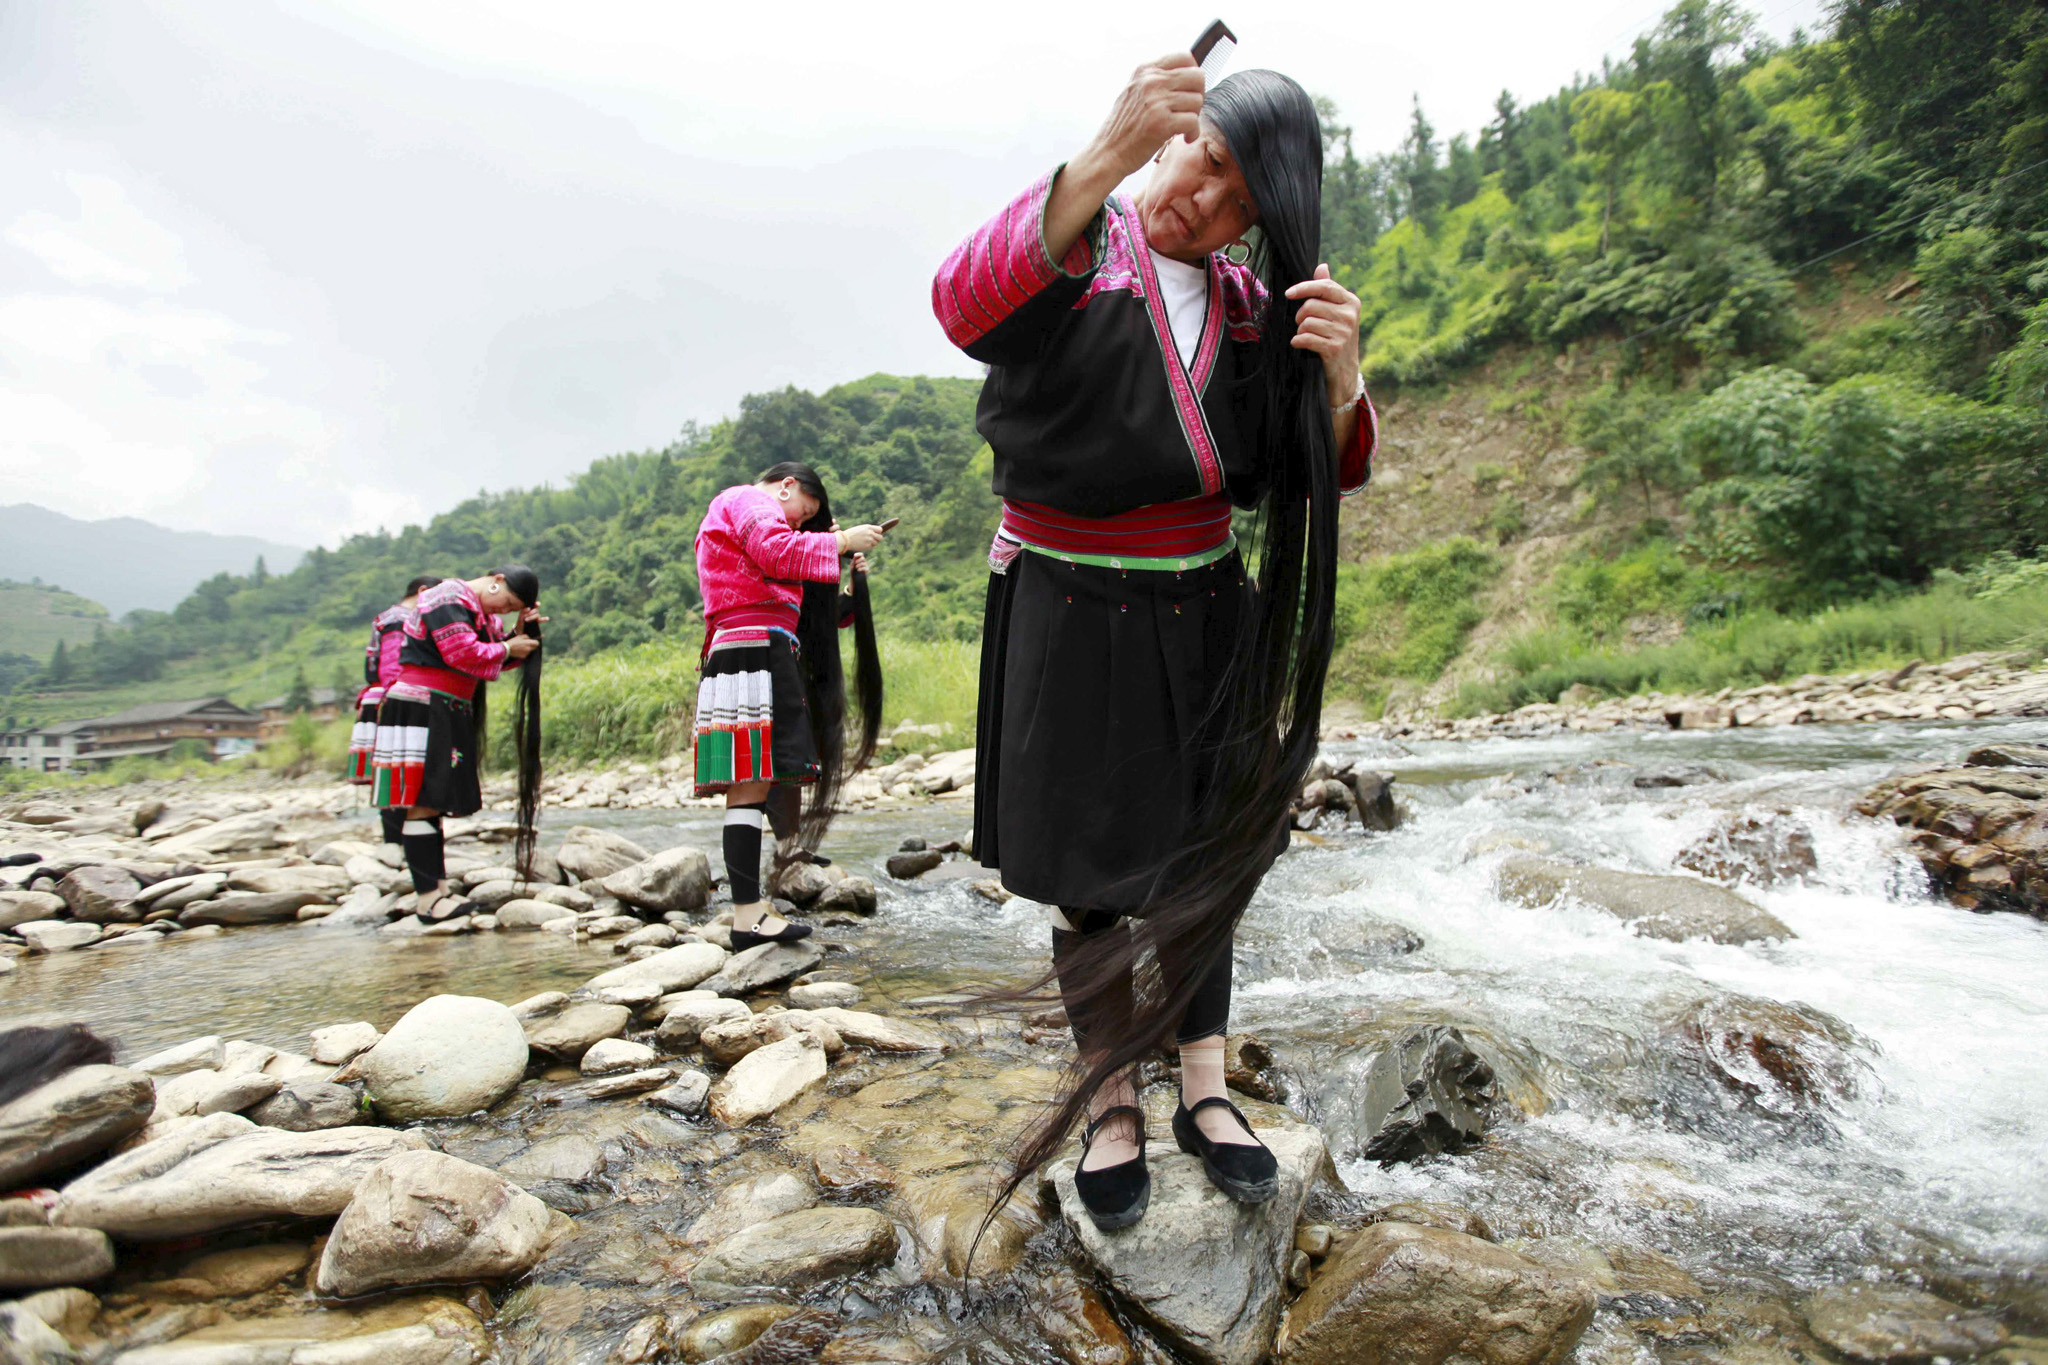 Ethnic Yao minority women brush their long hair near a creek, in Huangluo village of Guilin, Guangxi Zhuang Autonomous Region, China